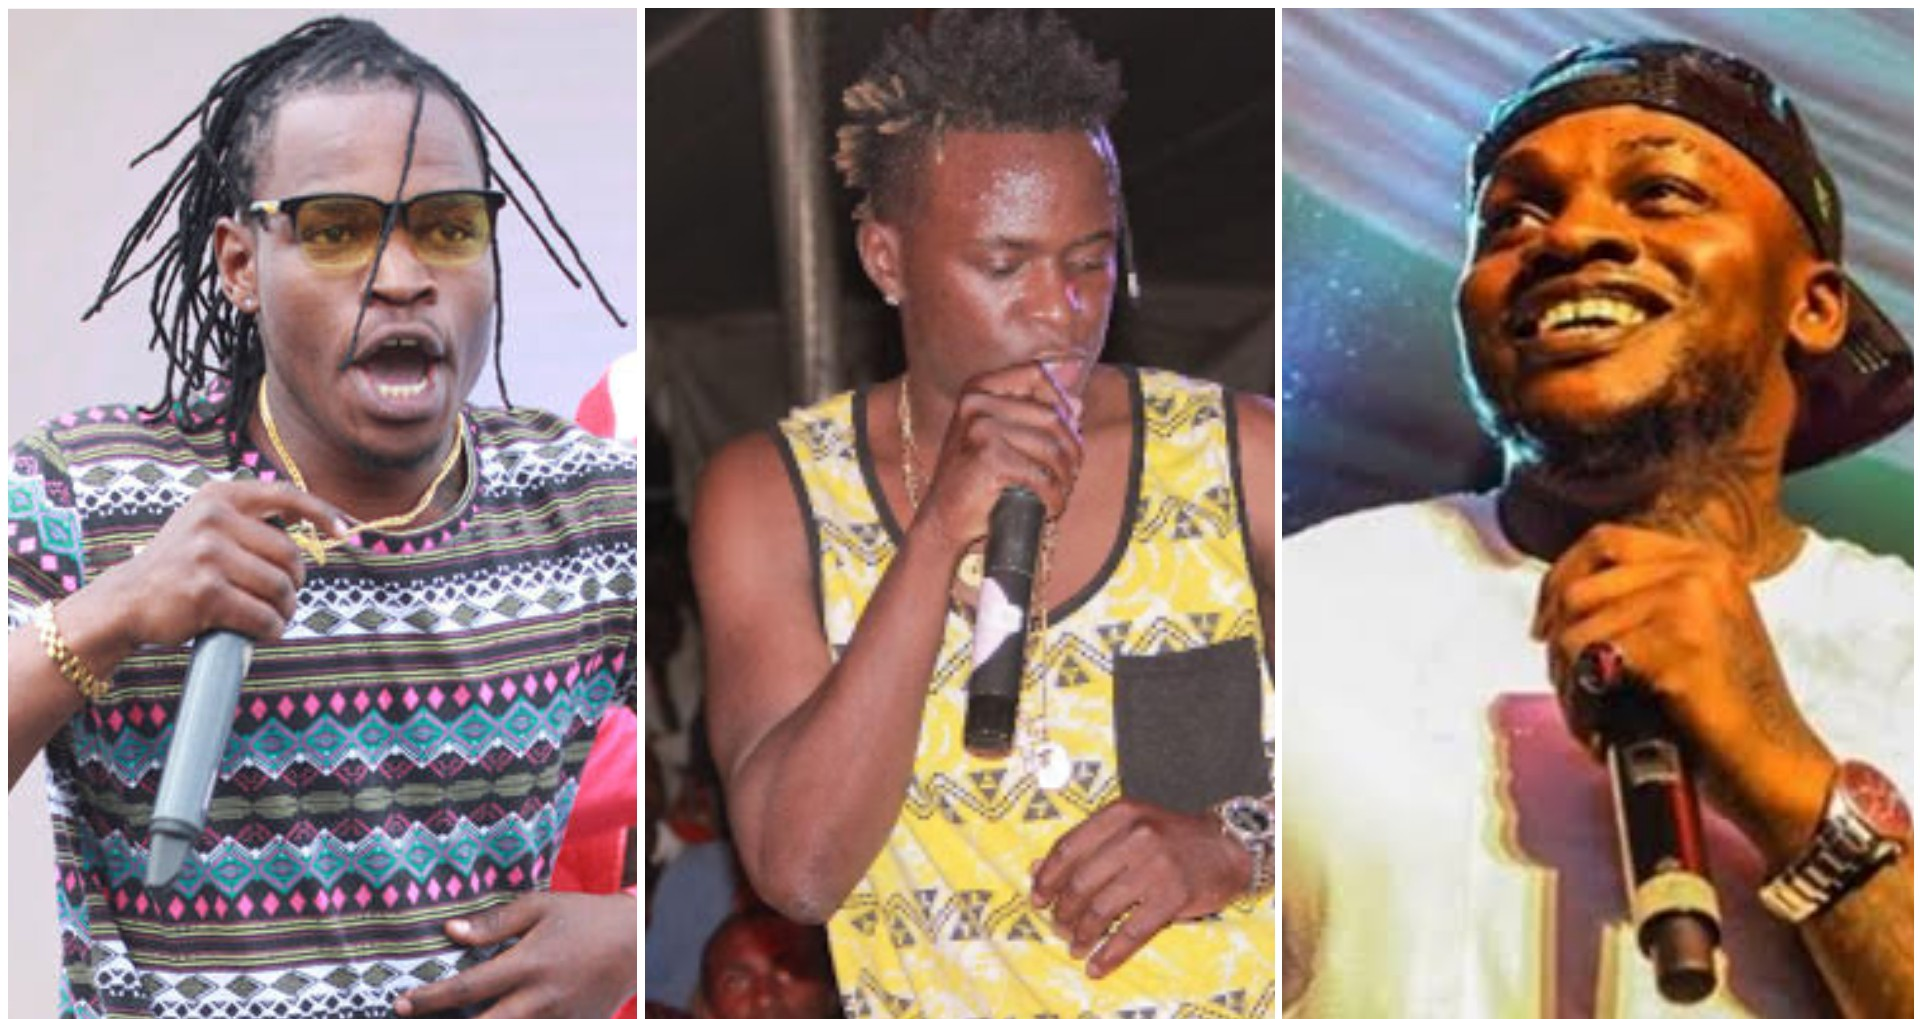 Timmy Tdat Vs Willy Paul Vs Khaligraph: Who is the best live performer?